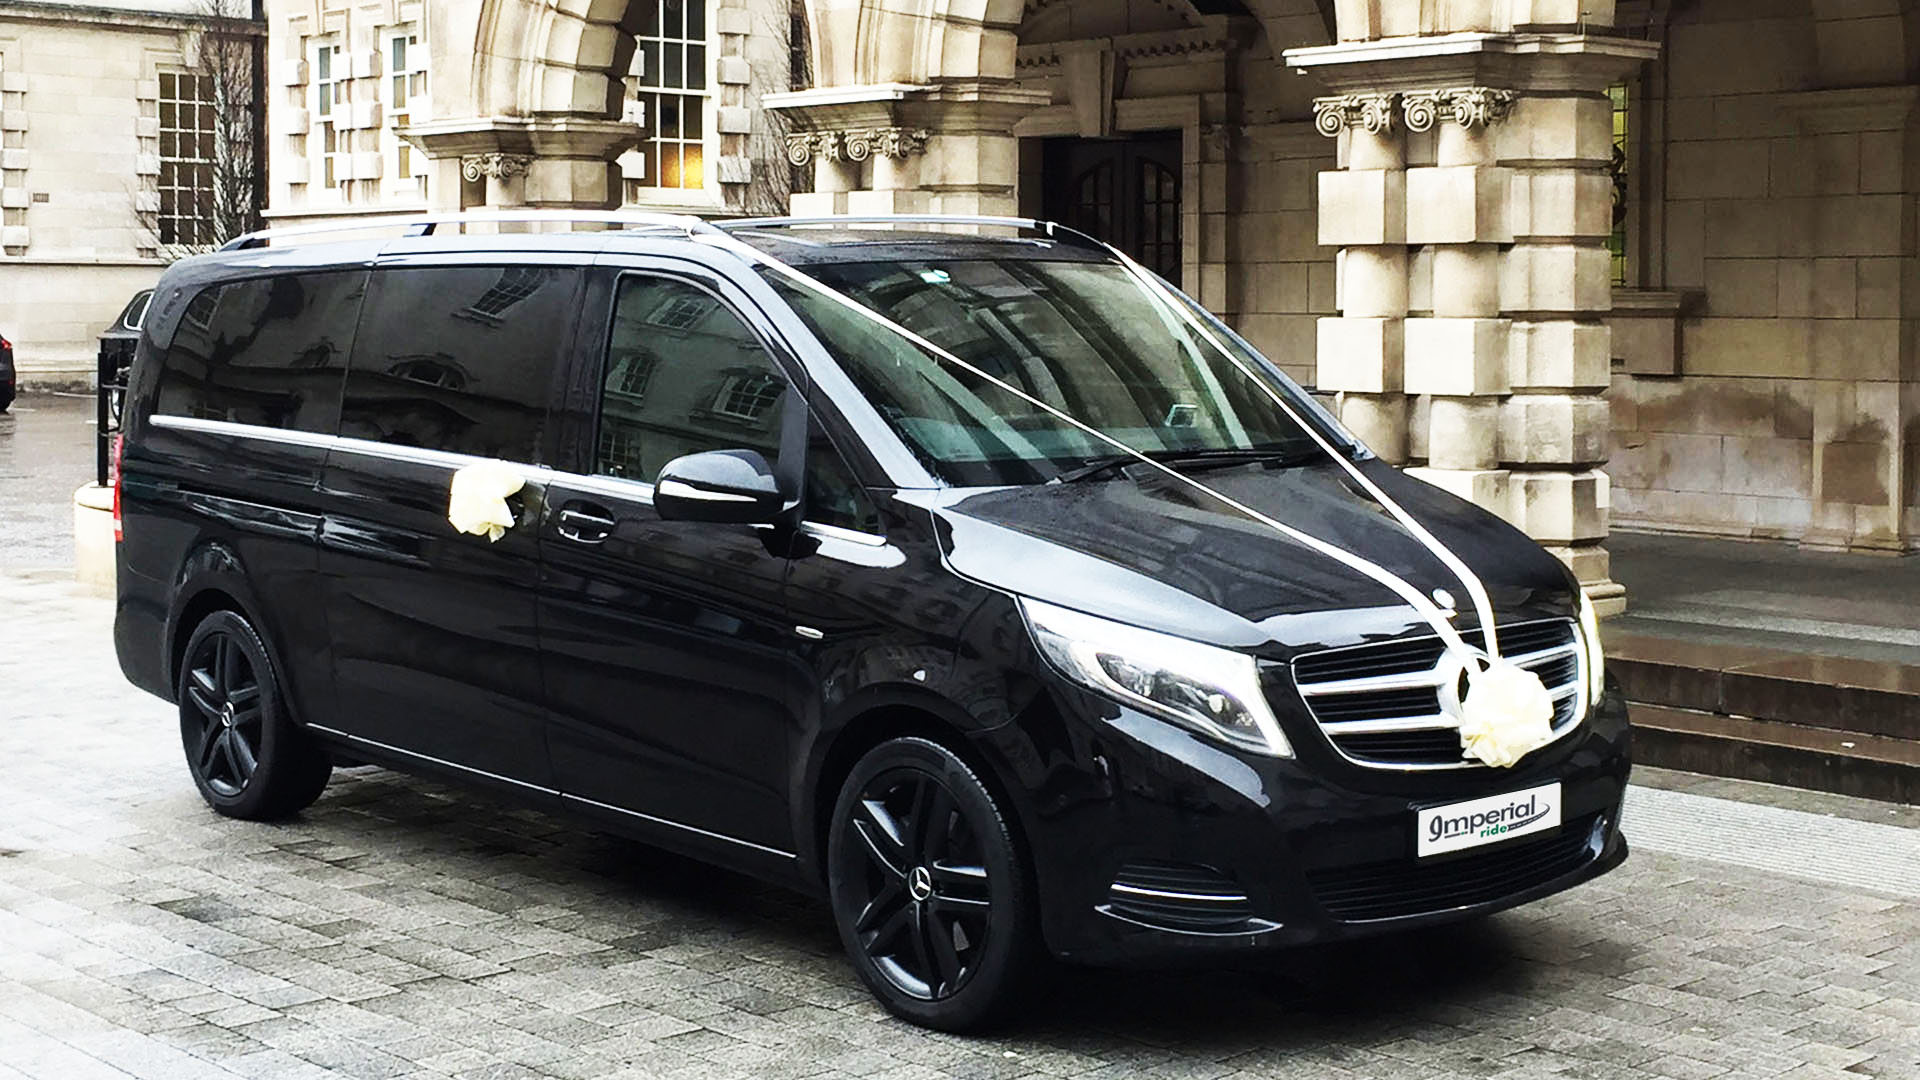 v-class-wedding-hire-in-camden